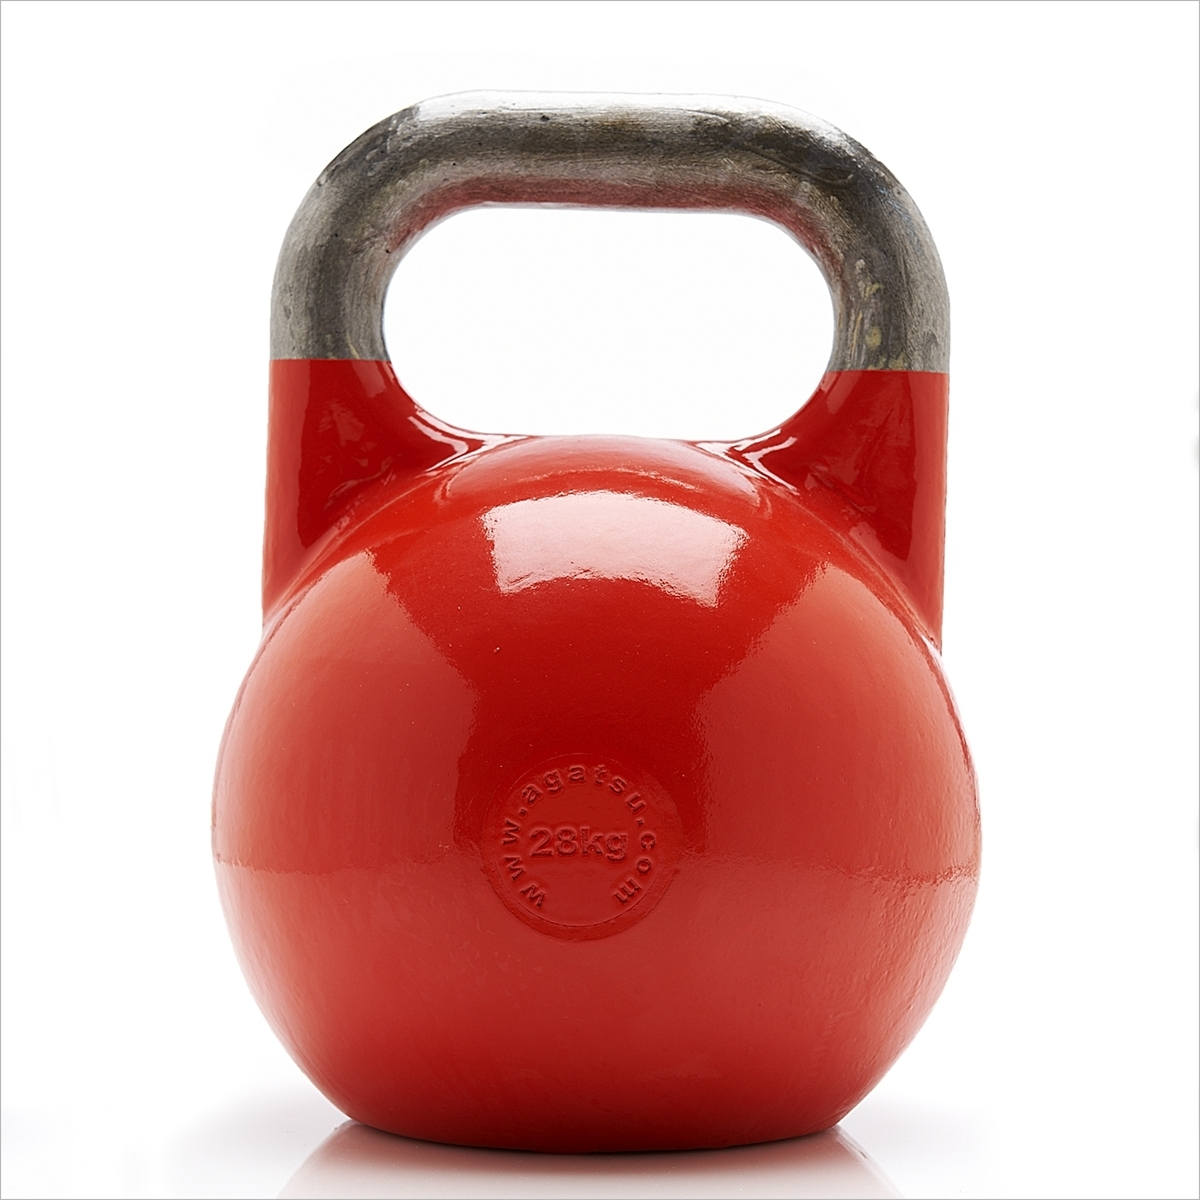 Kettlebell Training Benefits: A New Study: More Benefits With